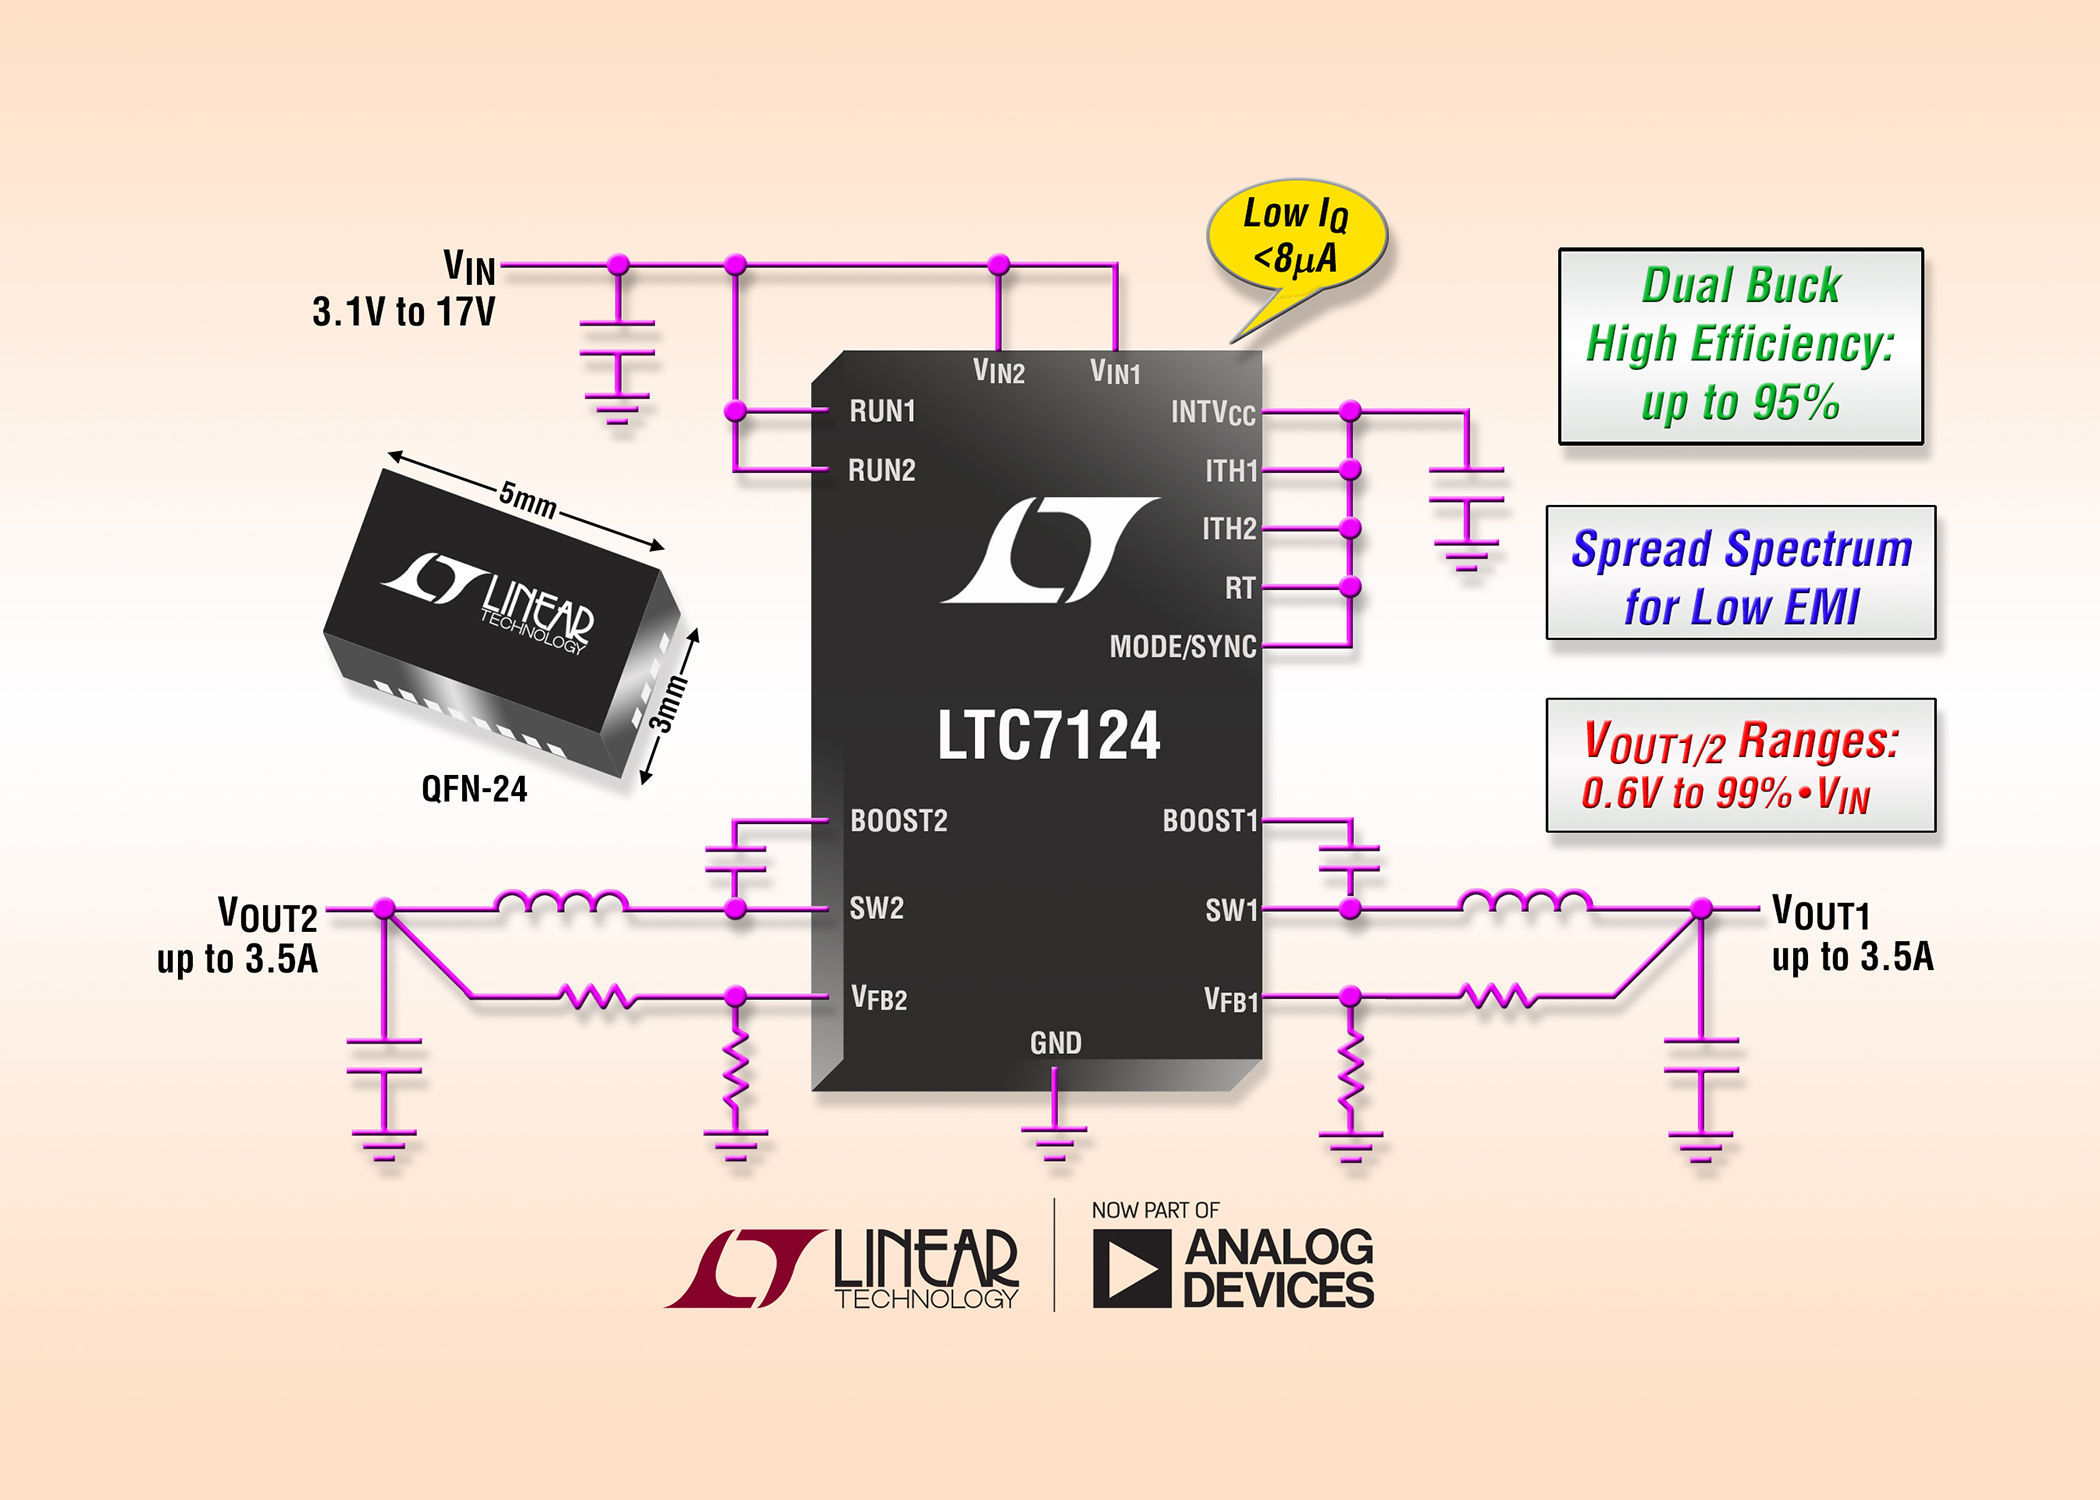 Dual output buck regulator incorporates a constant-frequency, peak-current-mode architecture